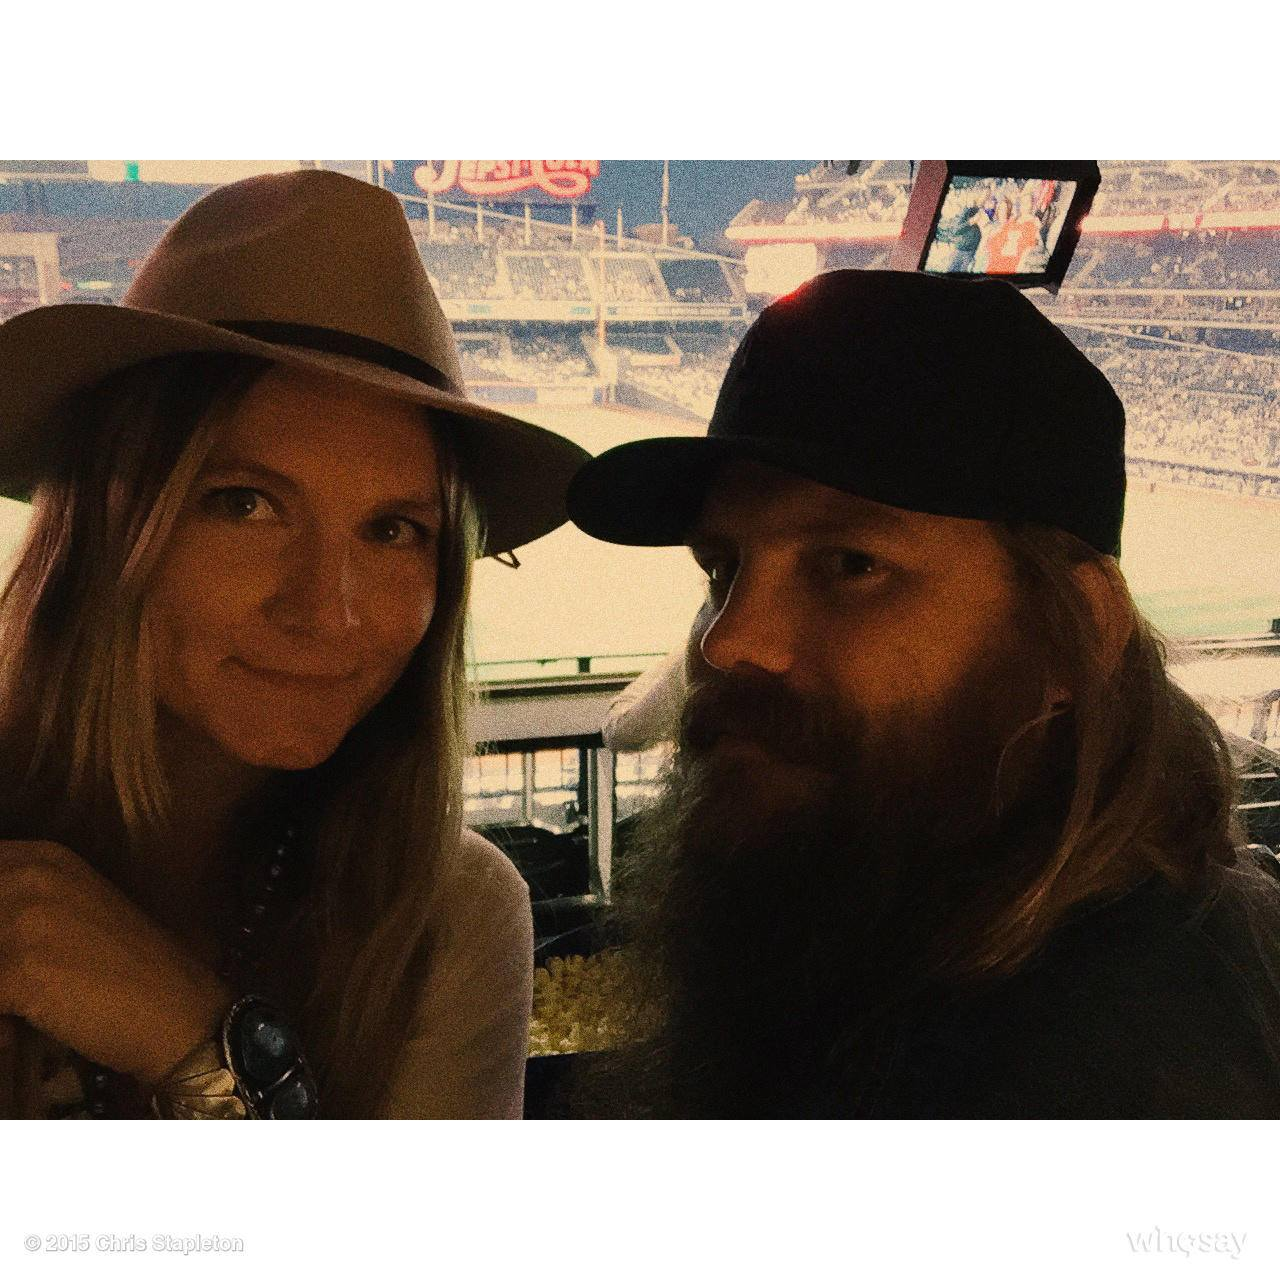 Chris Stapleton's Wife, Morgane Brings Light to Her Husband's Music and Life 2